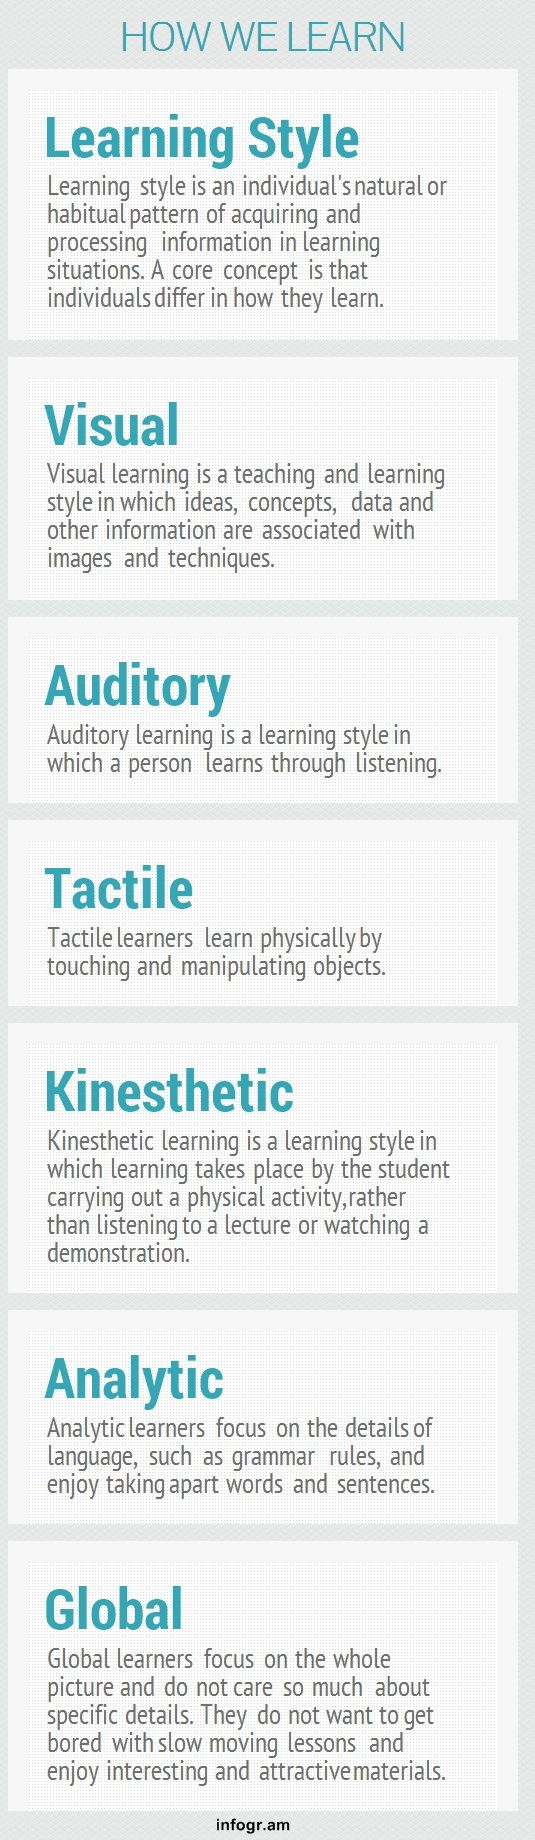 Famous quotes about learning styles quotesgram - Learning Style Review Visual Auditory Tactile Kinesthetic Analytic Global